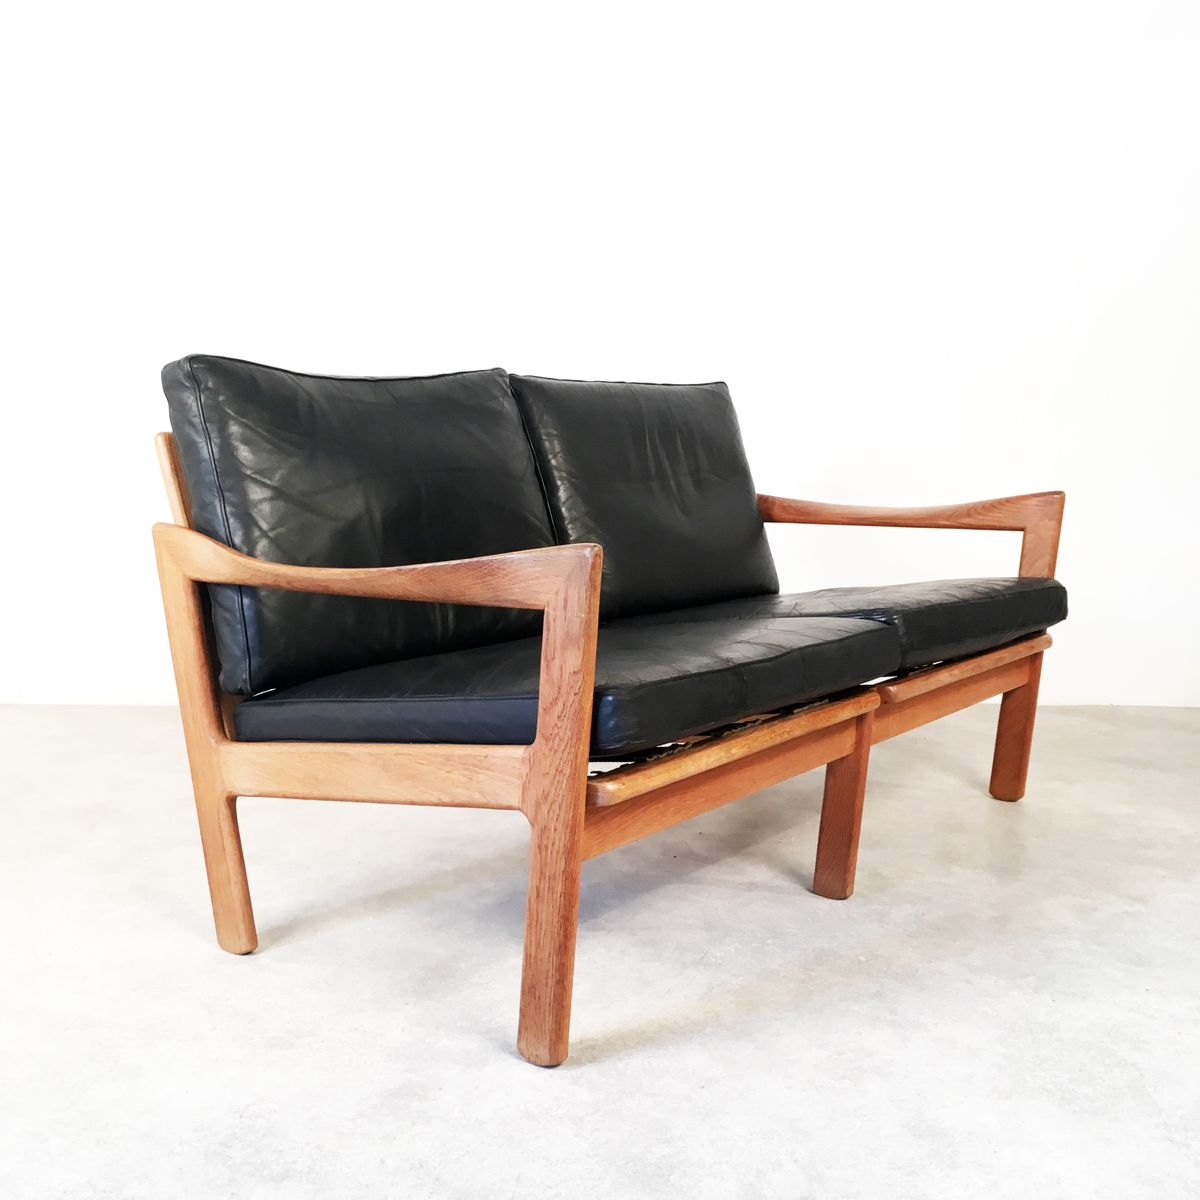 Two Seater Sofa By Illum Wikkels For Niels Eilersen For